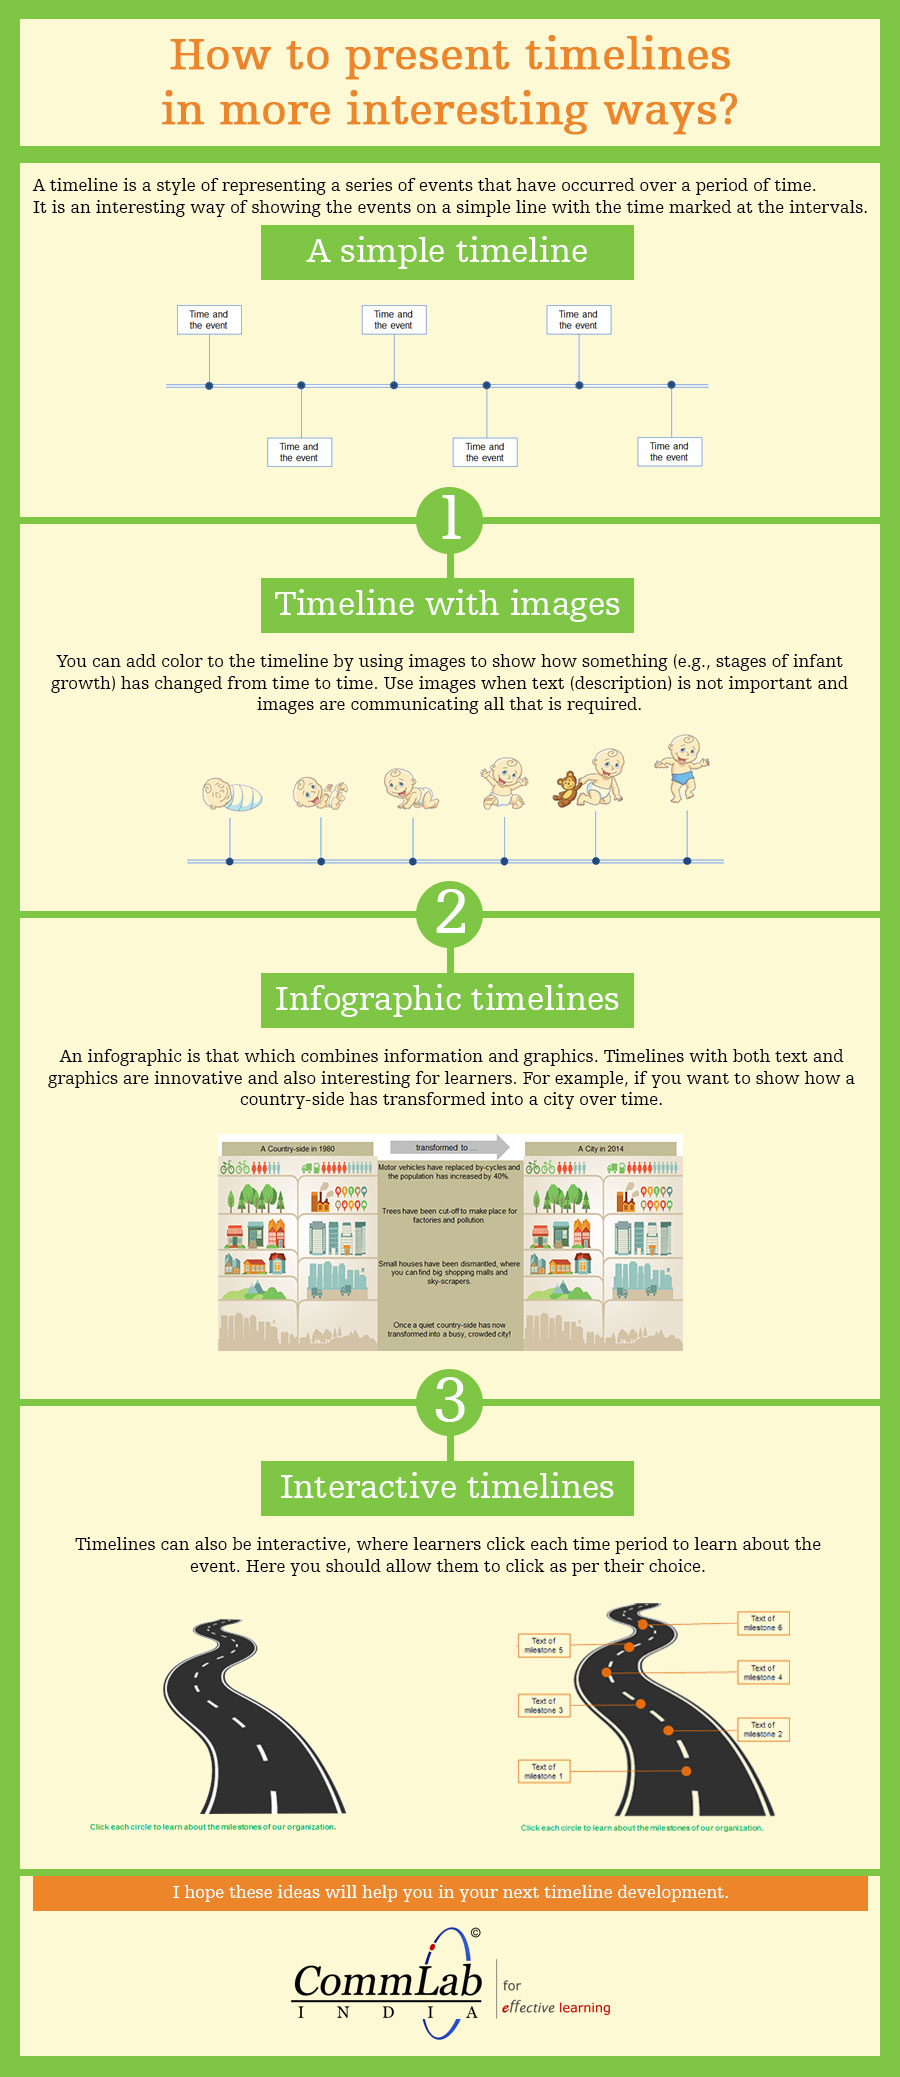 3 Brilliant Ways to Present Timelines [Infographic]